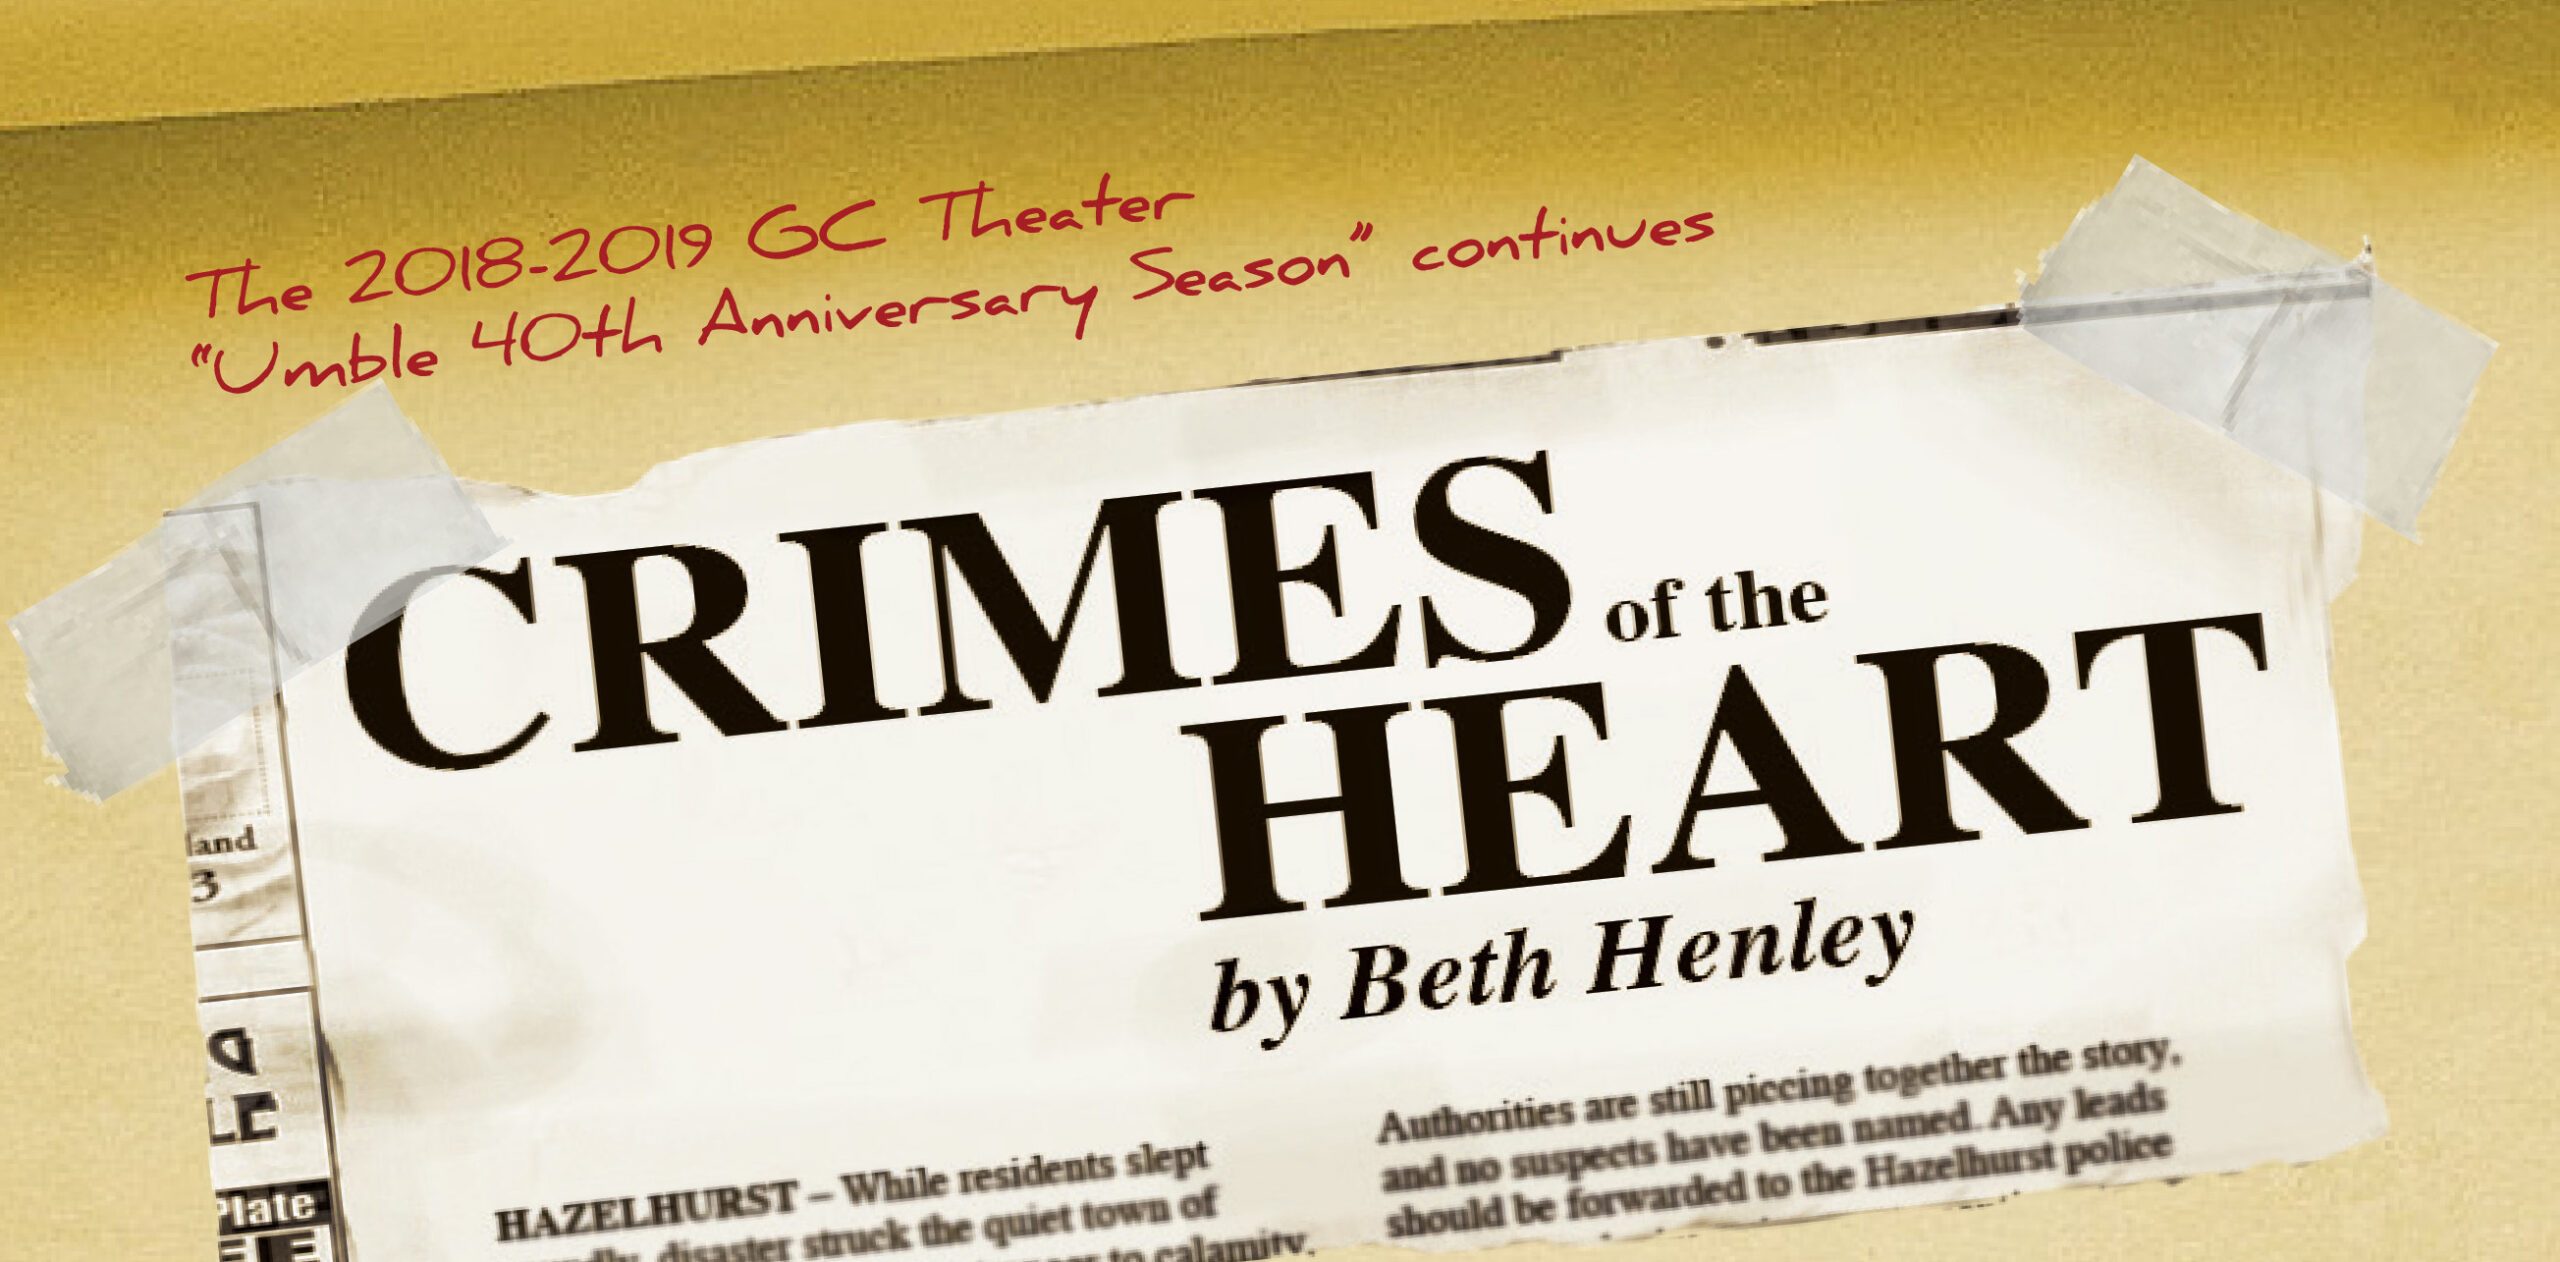 Poster for Crimes of the Heart